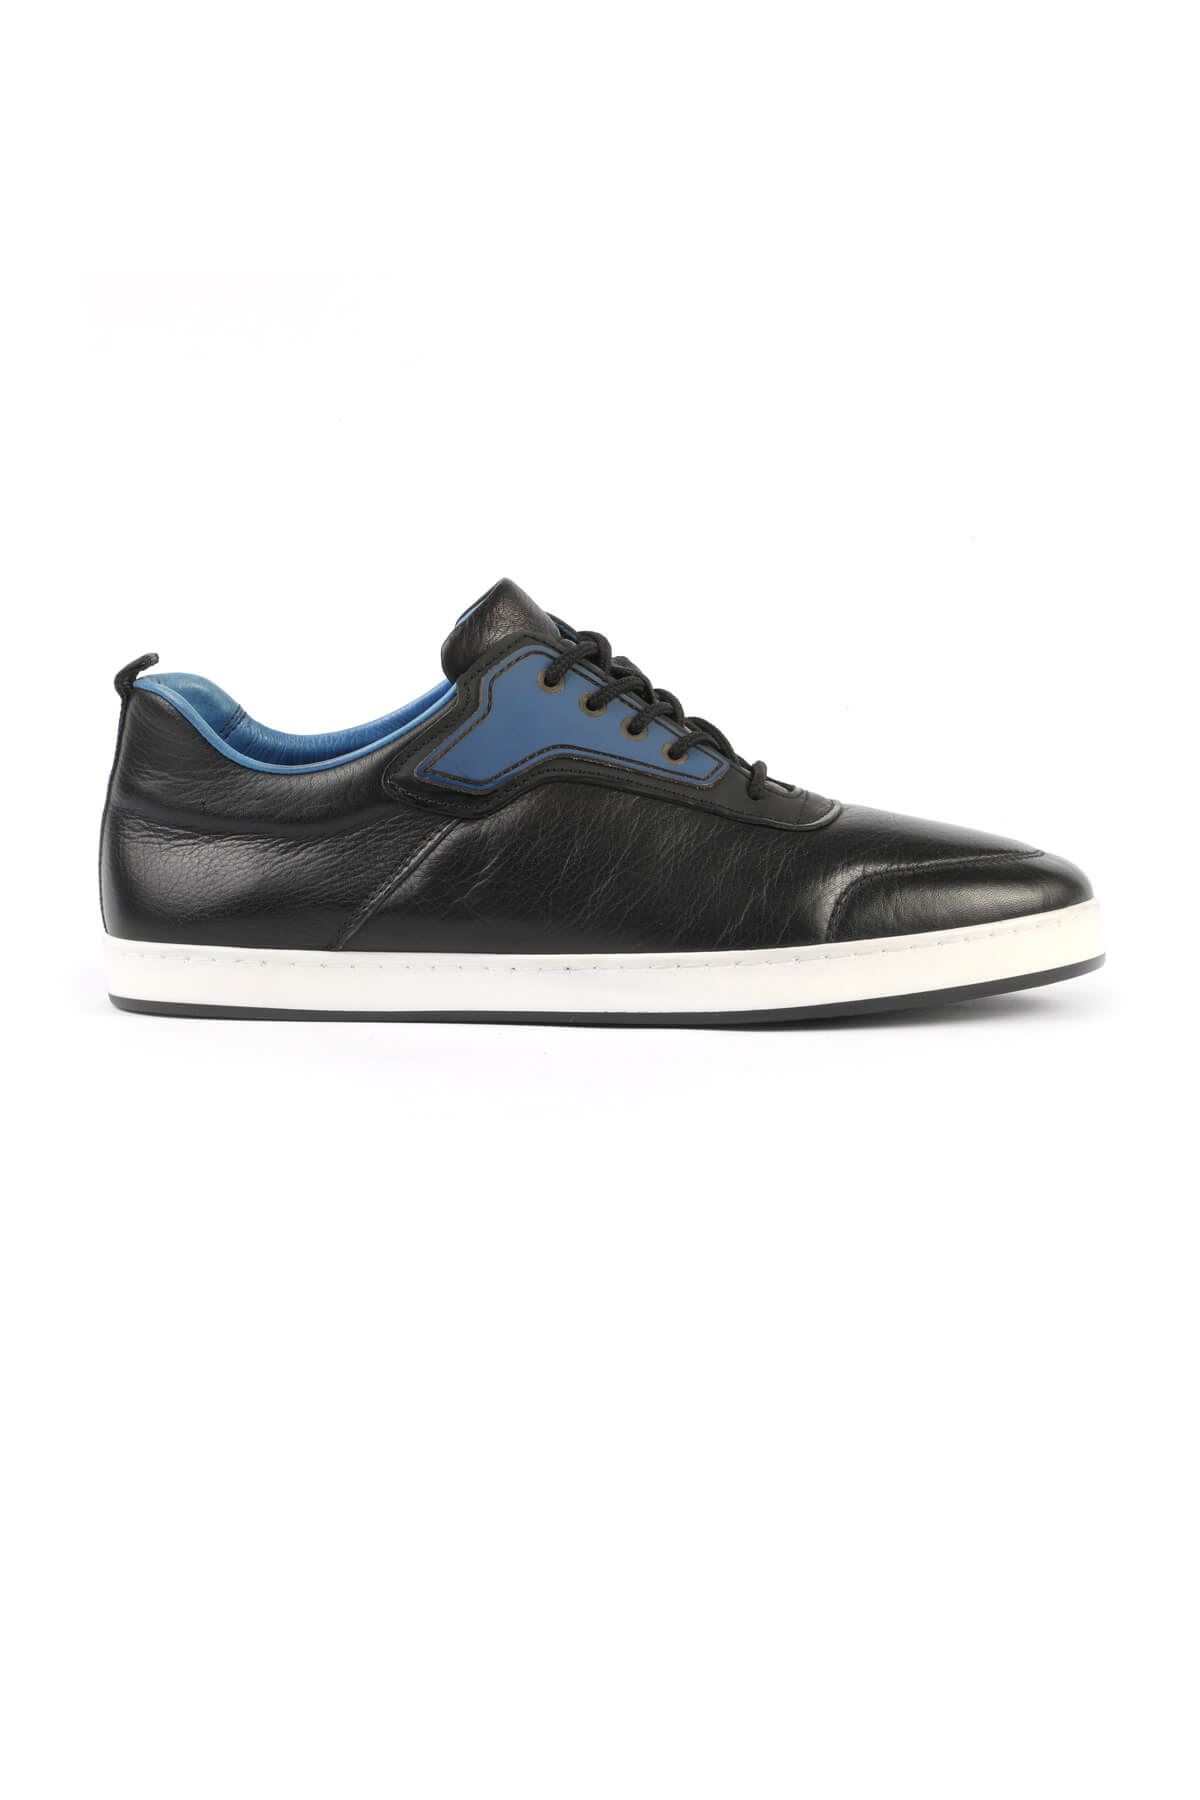 Libero 3105 Black Sneaker Shoes